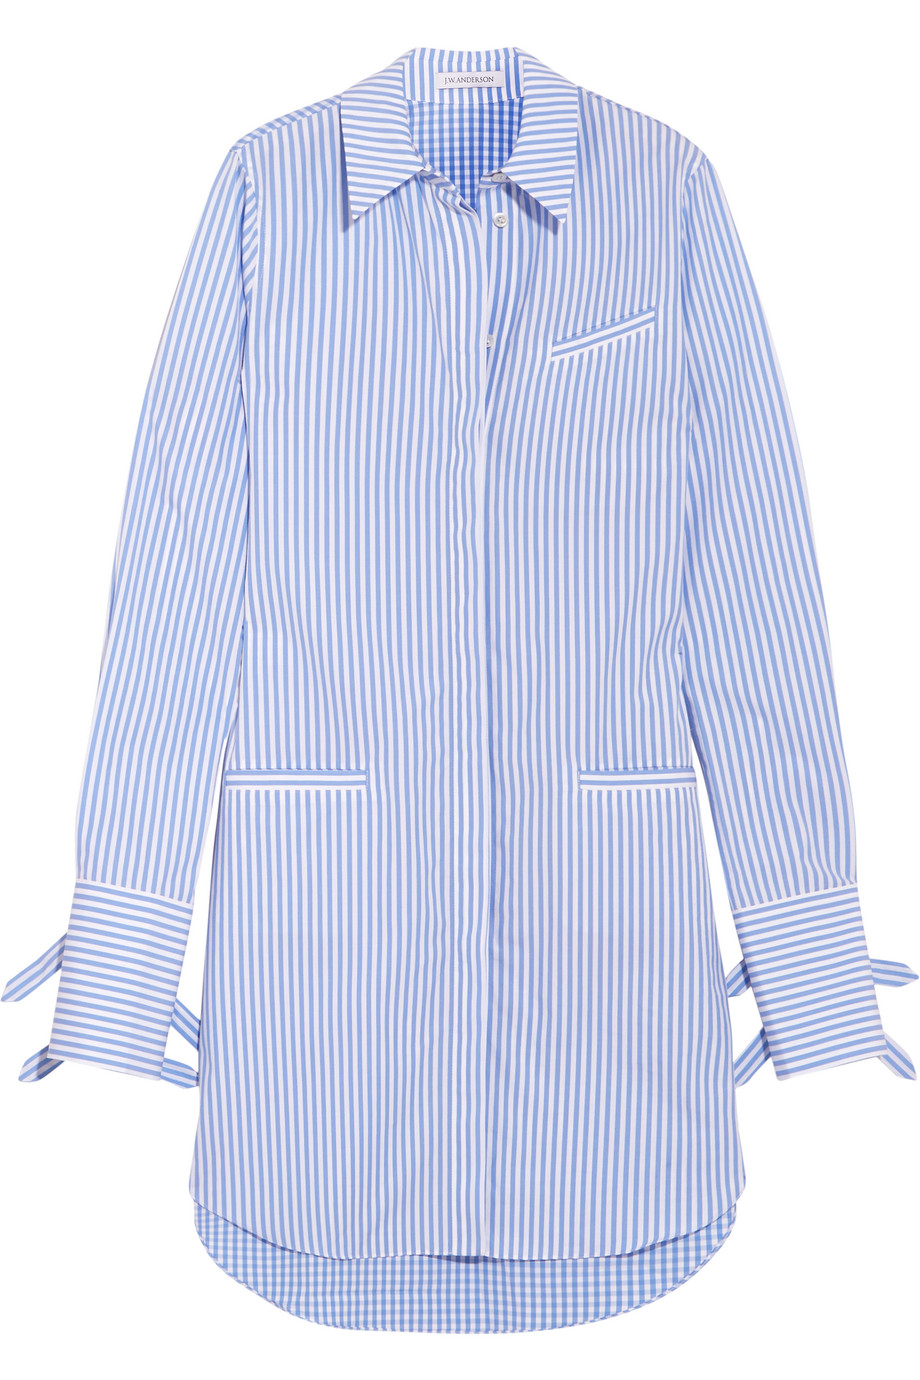 J.W.Anderson Striped Cotton and Gingham Shirt Dress, Blue, Women's - gingham, Size: 8